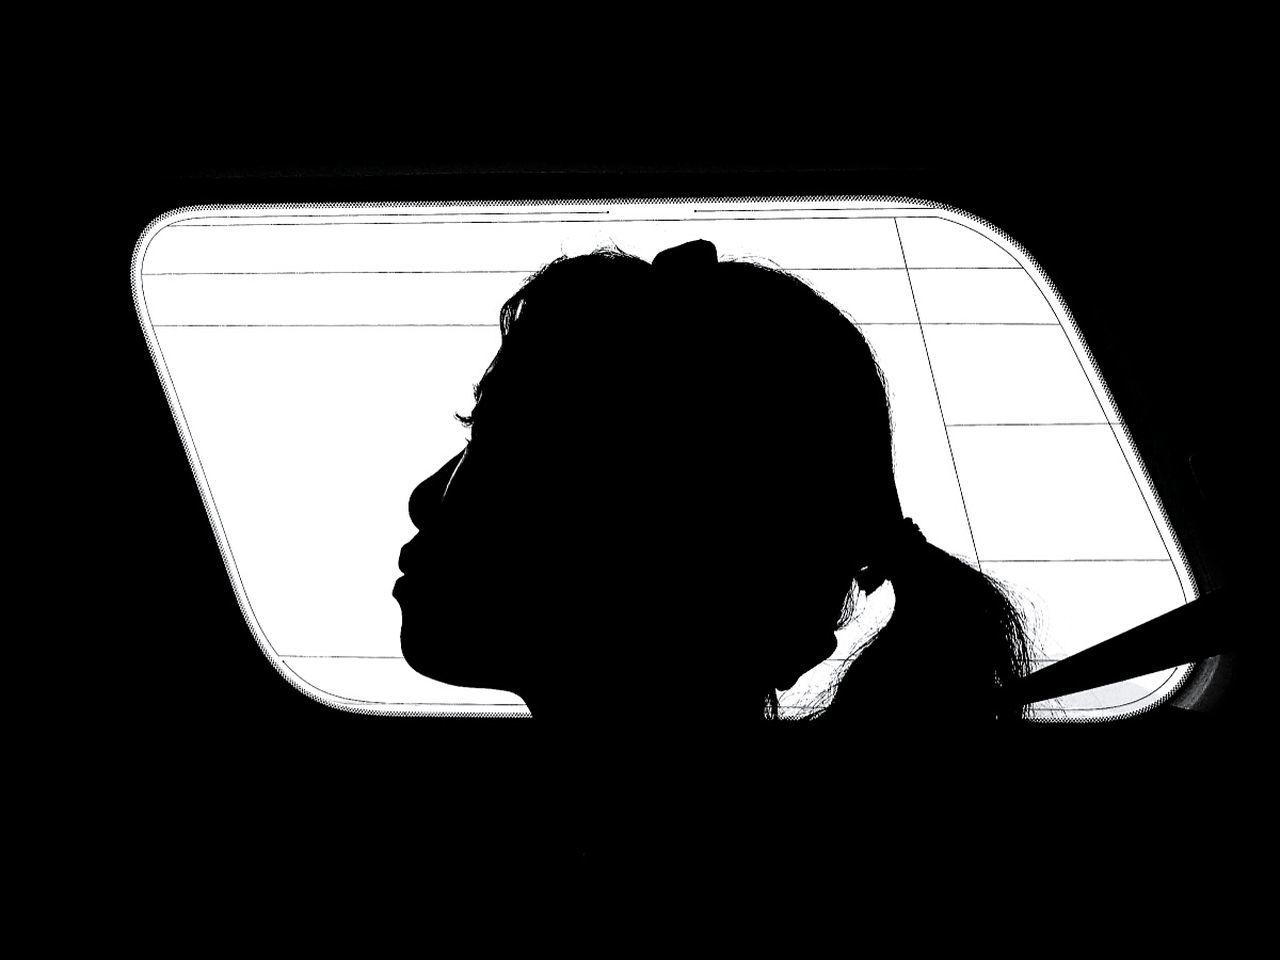 Silhouette One Person Adult Adults Only Headshot Disappointment Only Men Human Body Part Black Background Depression - Sadness People Portrait Young Adult Shy Young Women Traveling Home For The Holidays CarRides Roadtrip Traveling Home For The Holidays